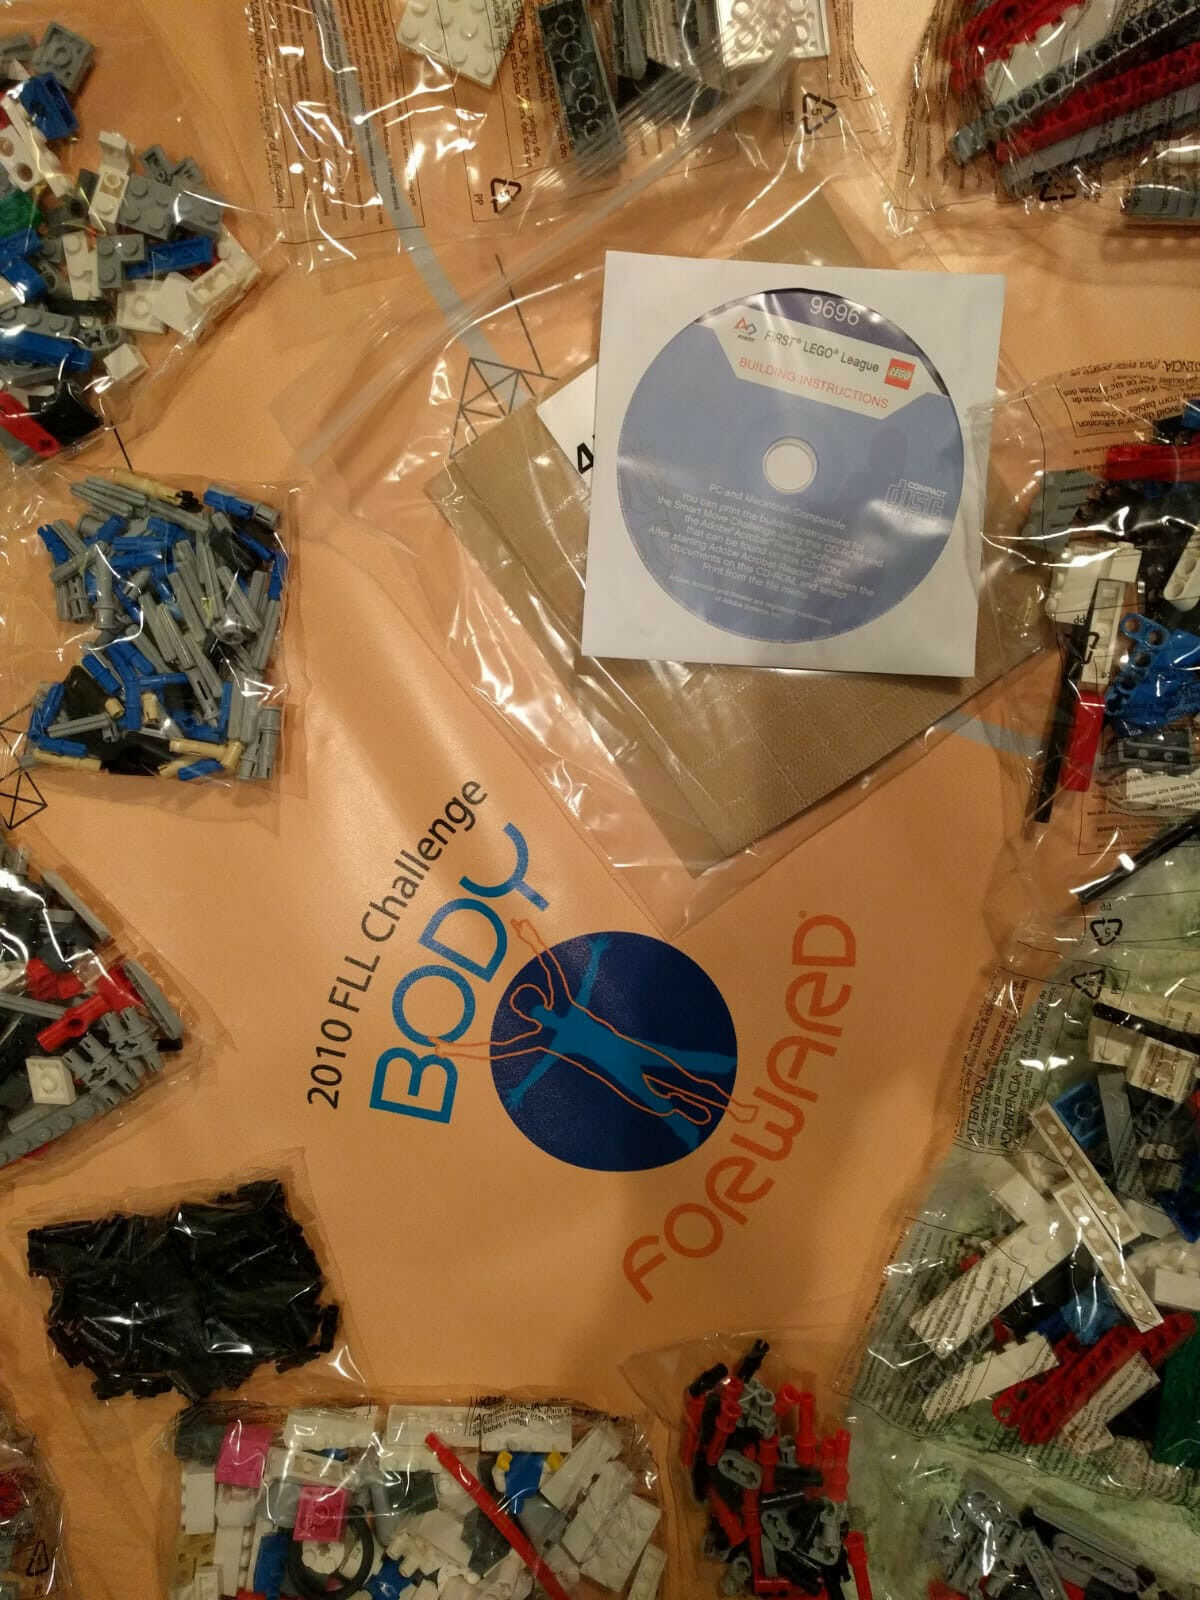 Lego 9696 Body Forward, First League Challenge 2010. Mindstorms. NEW